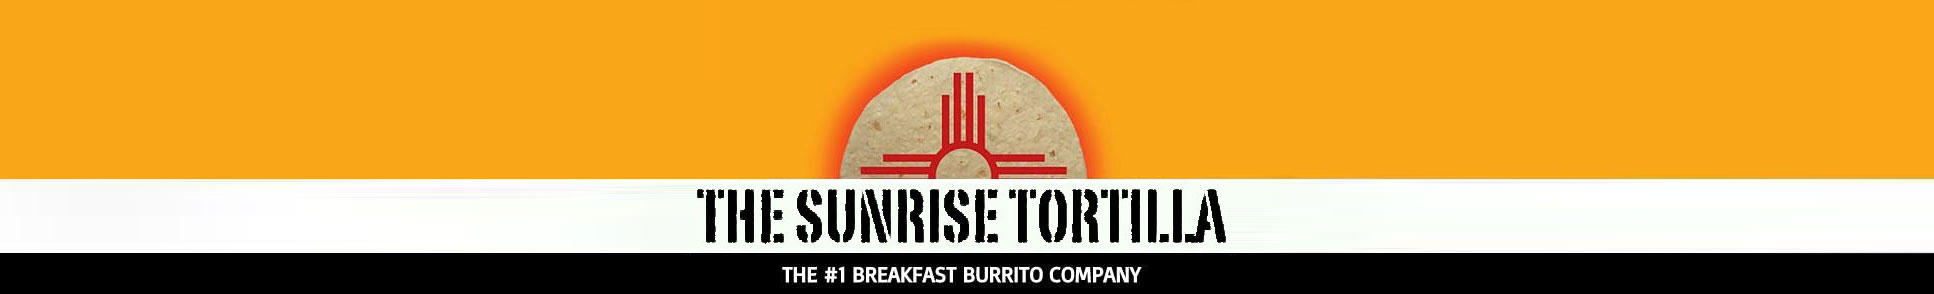 Sunrise Tortilla Home